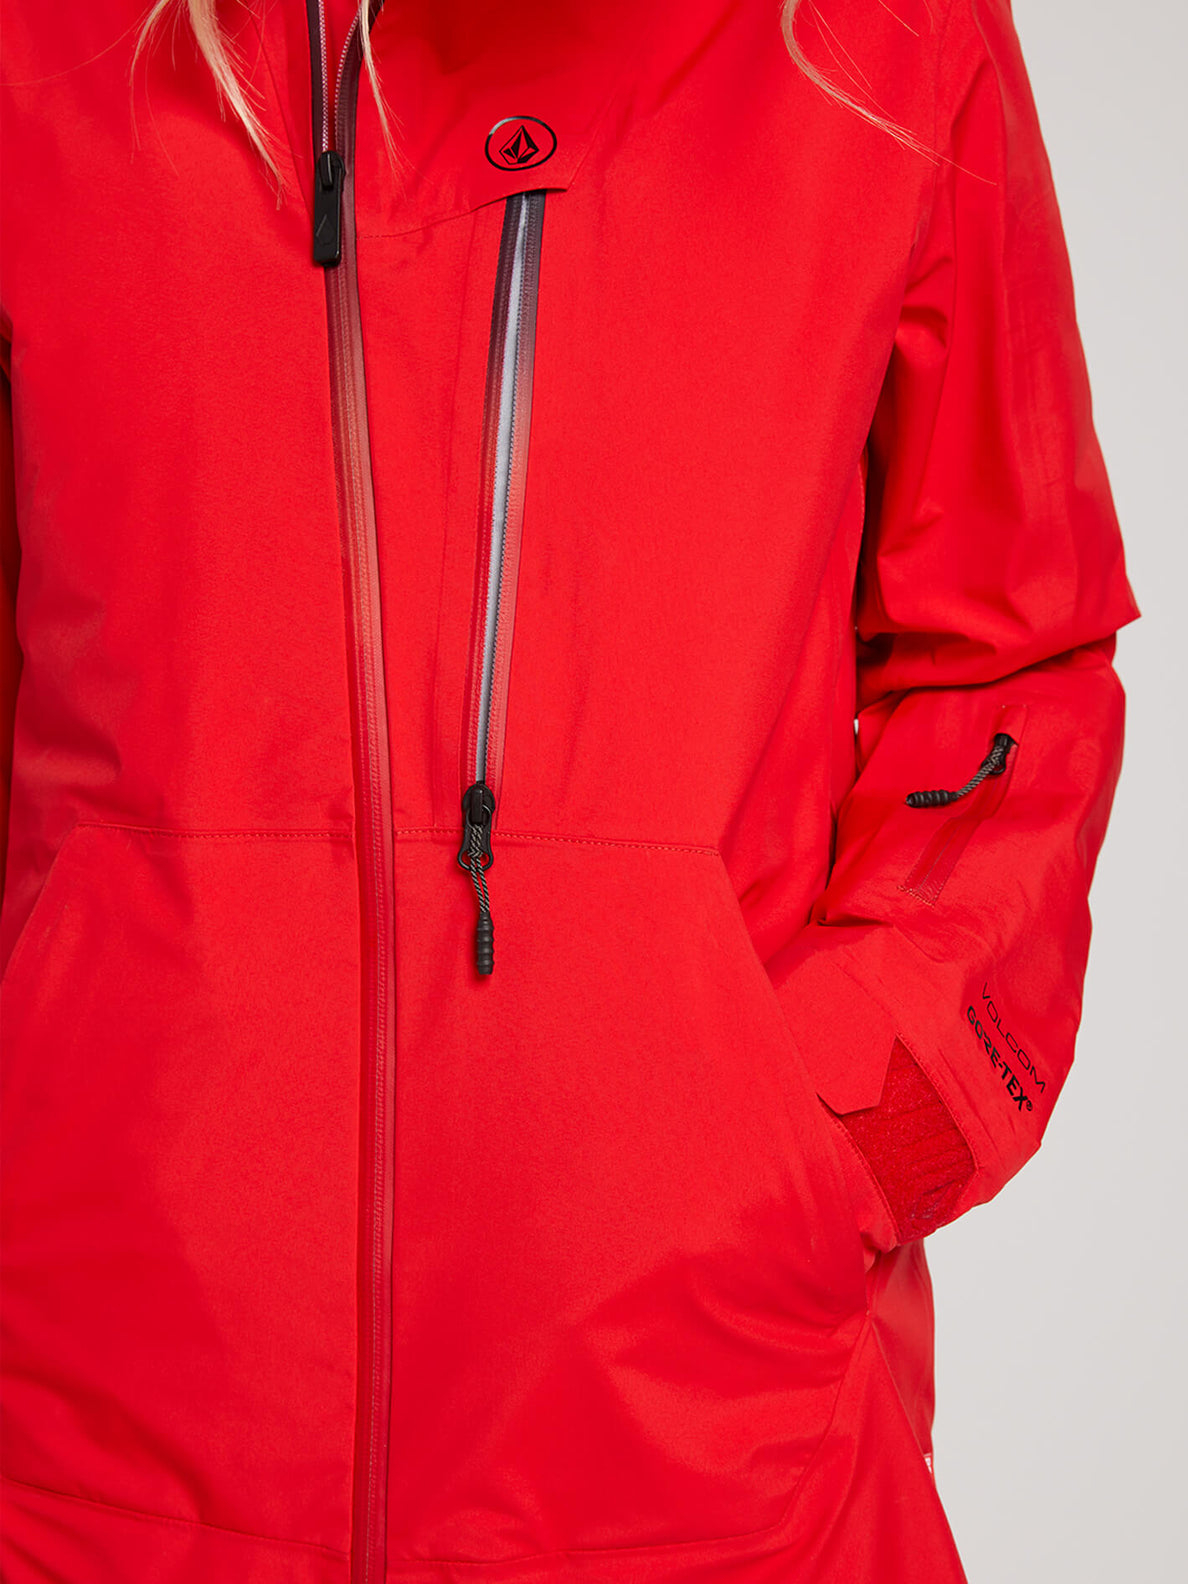 Nya Tds® Gore-tex Jacket In Crimson, Fourth Alternate View